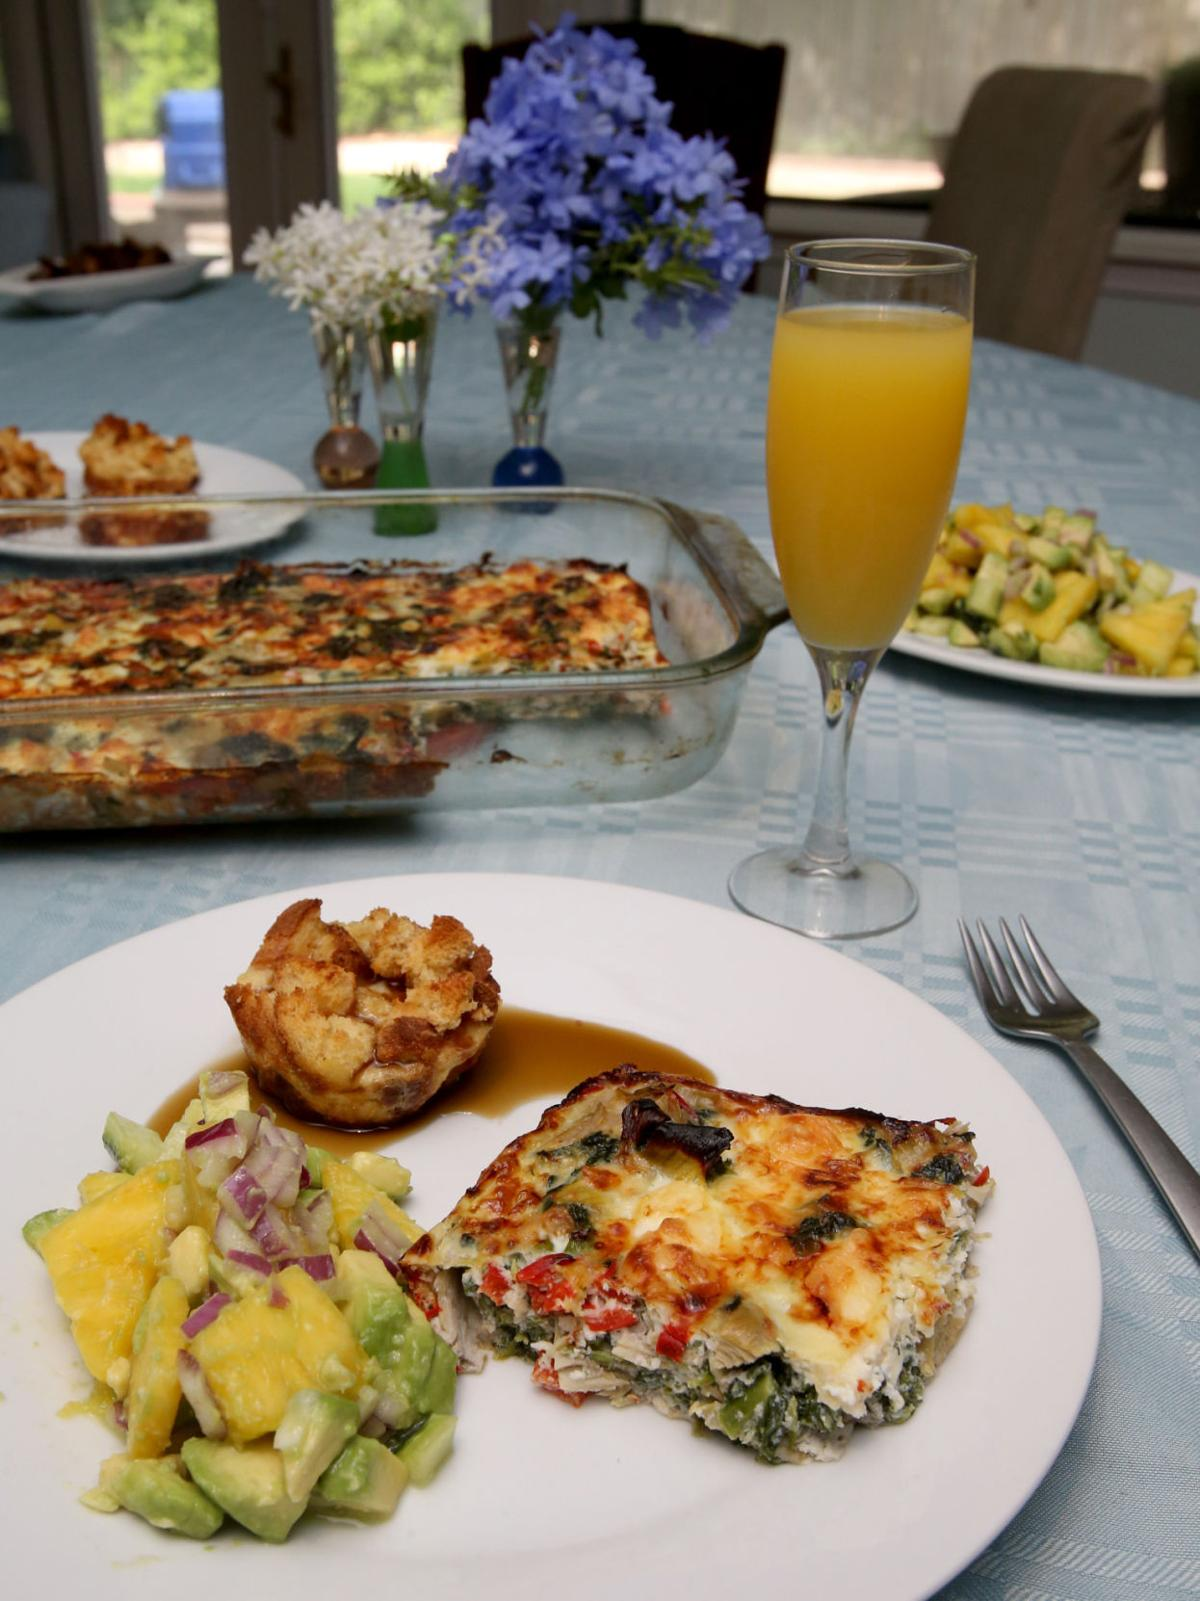 Recipes for an Mother's Day breakfast